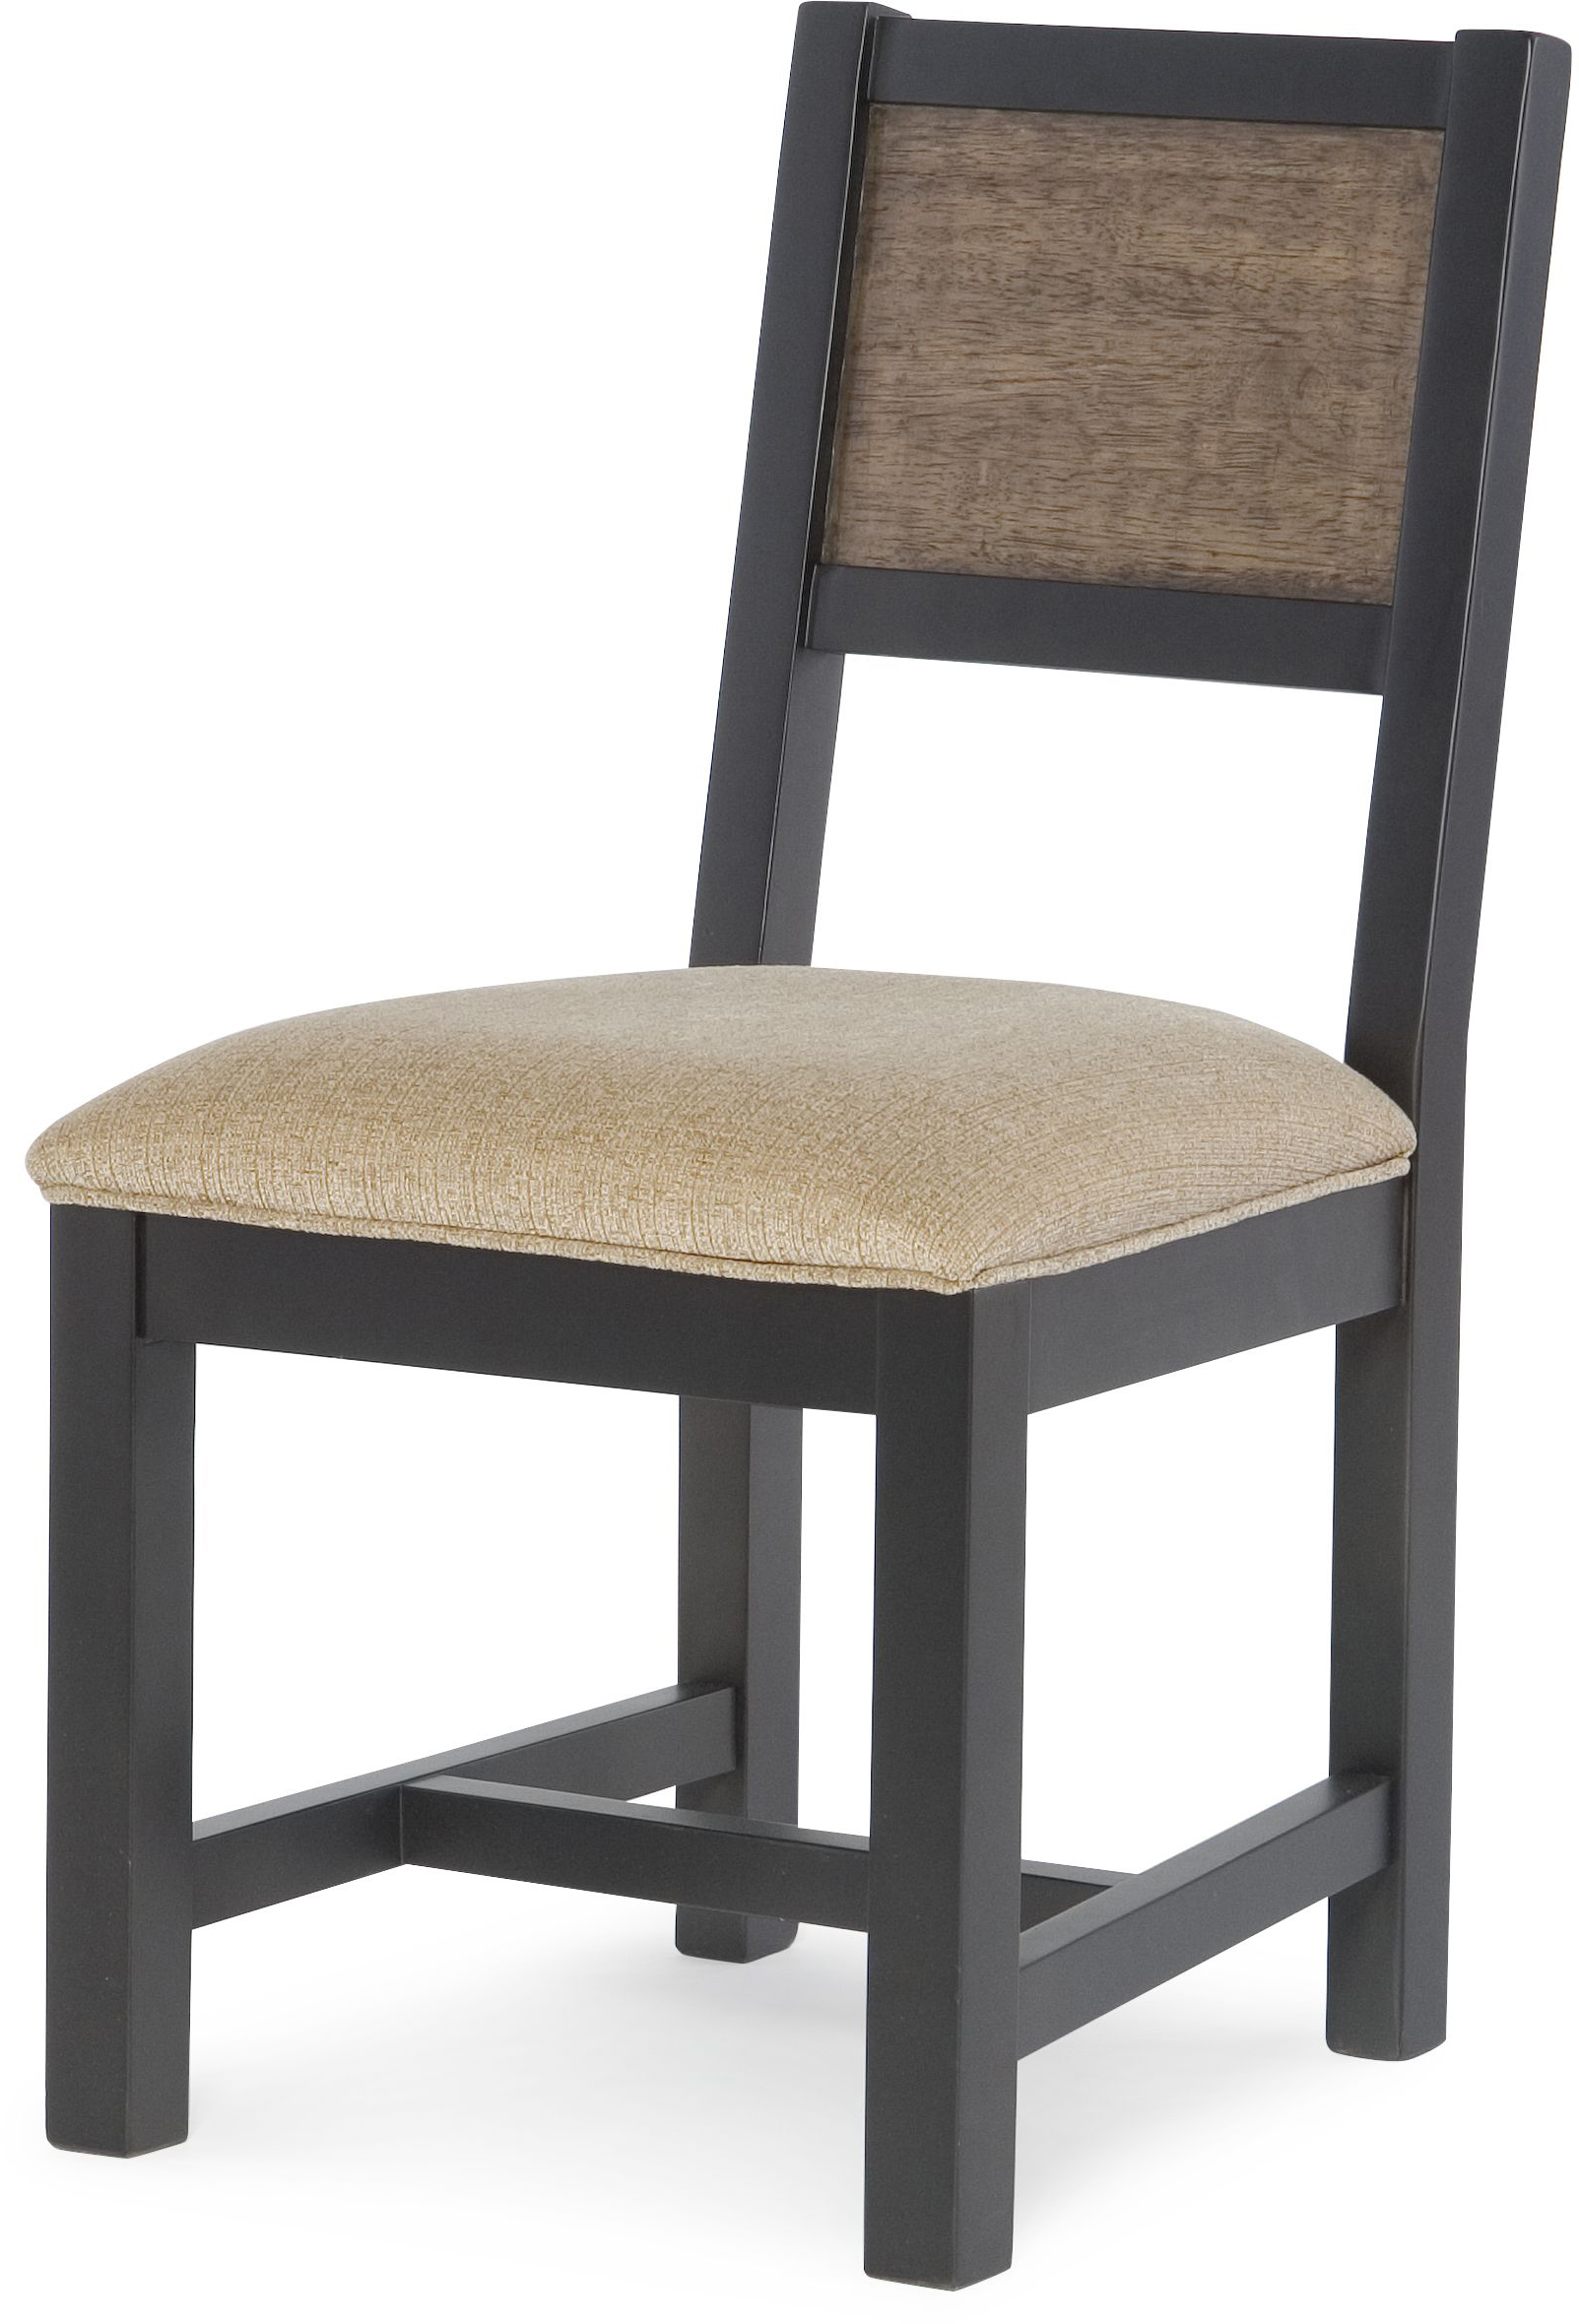 Legacy Classic Kids Fulton County Desk Chair with